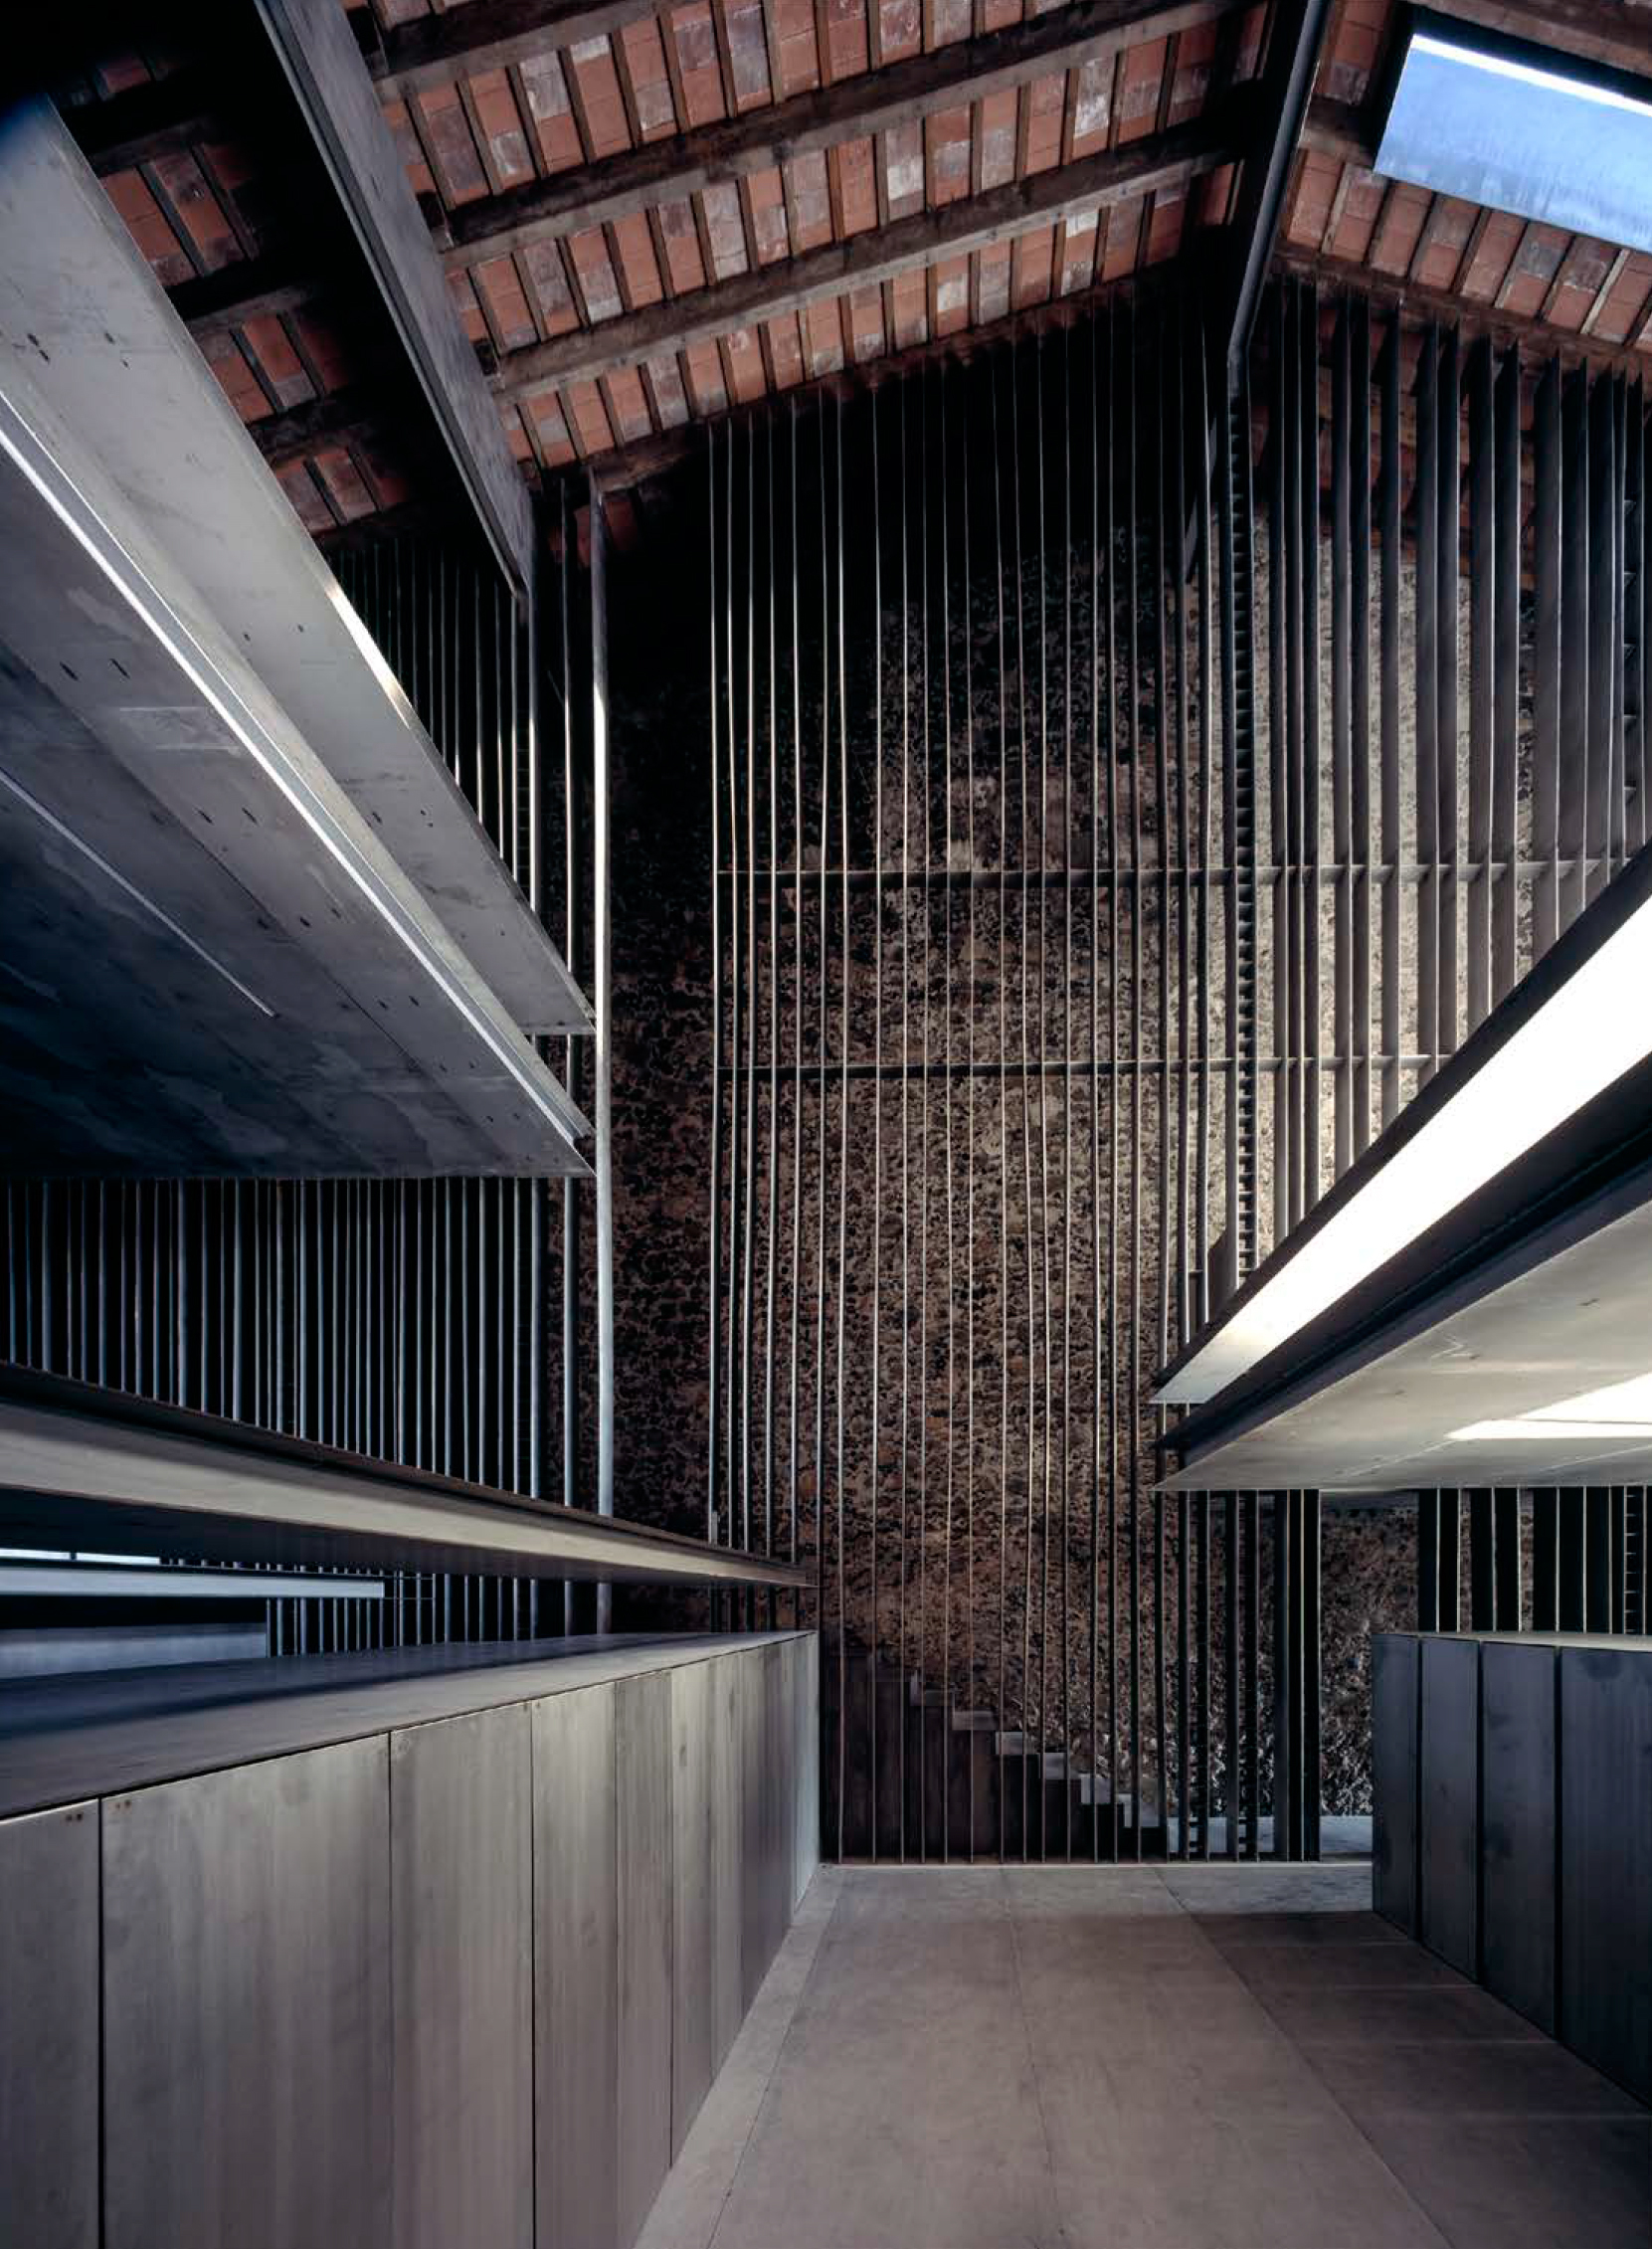 Gallery of who are rcr arquitectes 9 things to know about - Arquitectes girona ...